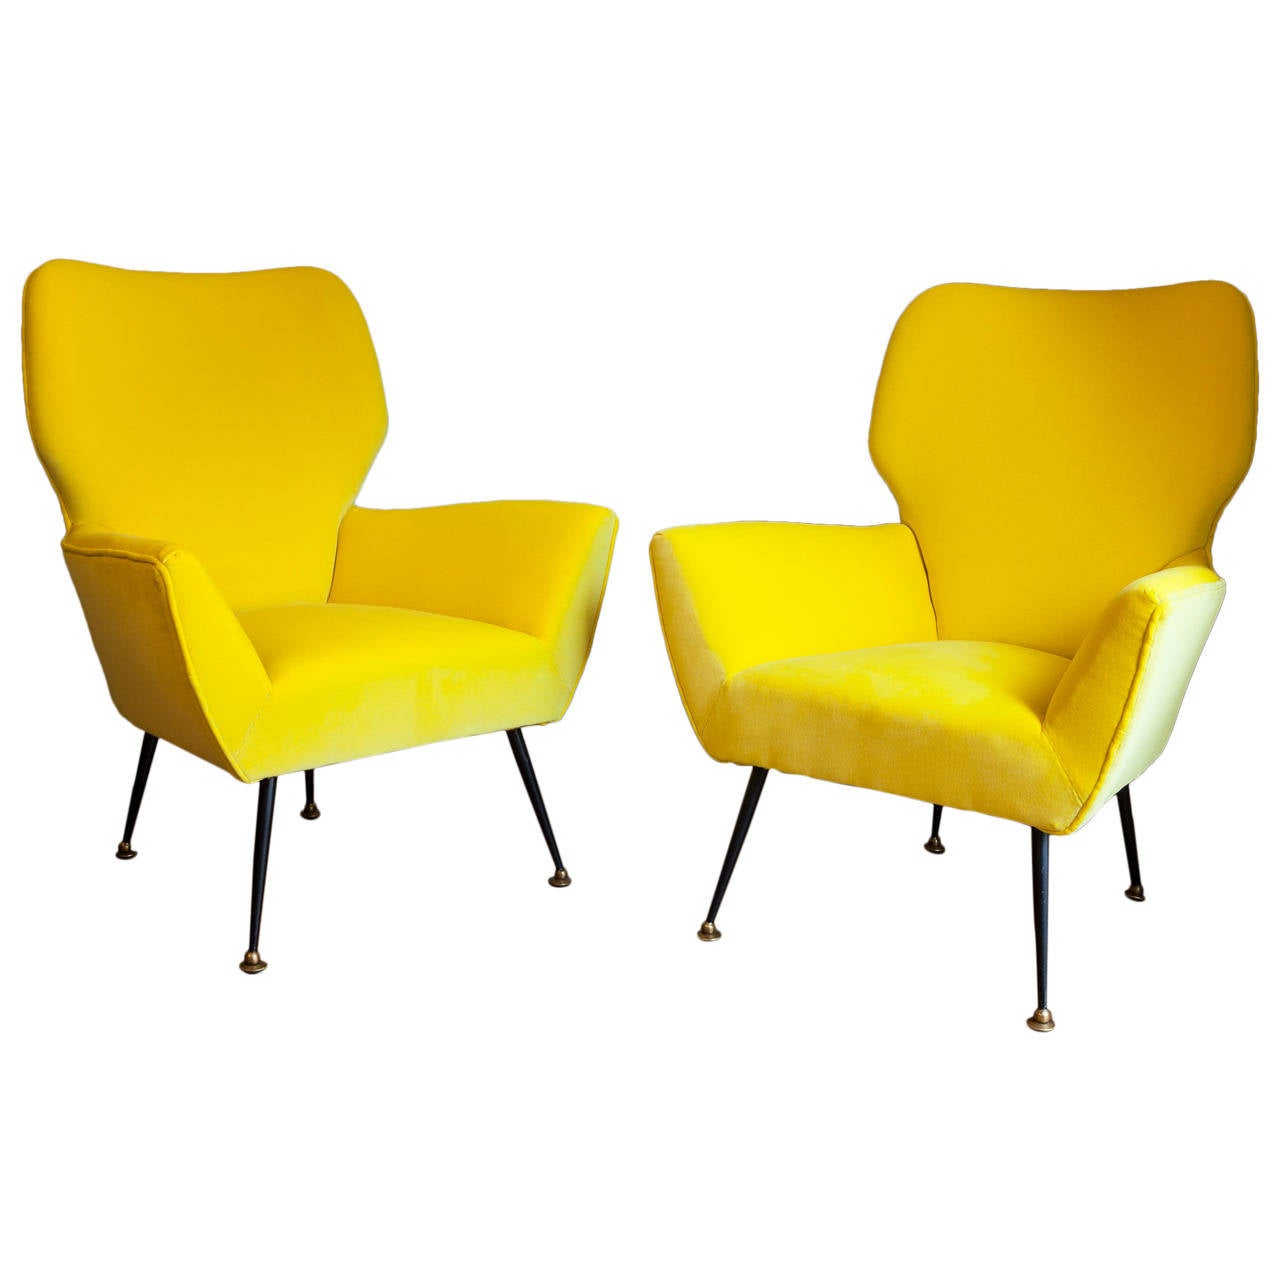 Pair of chairs italy circa 1950 dedar fabric at 1stdibs for Furniture 1950